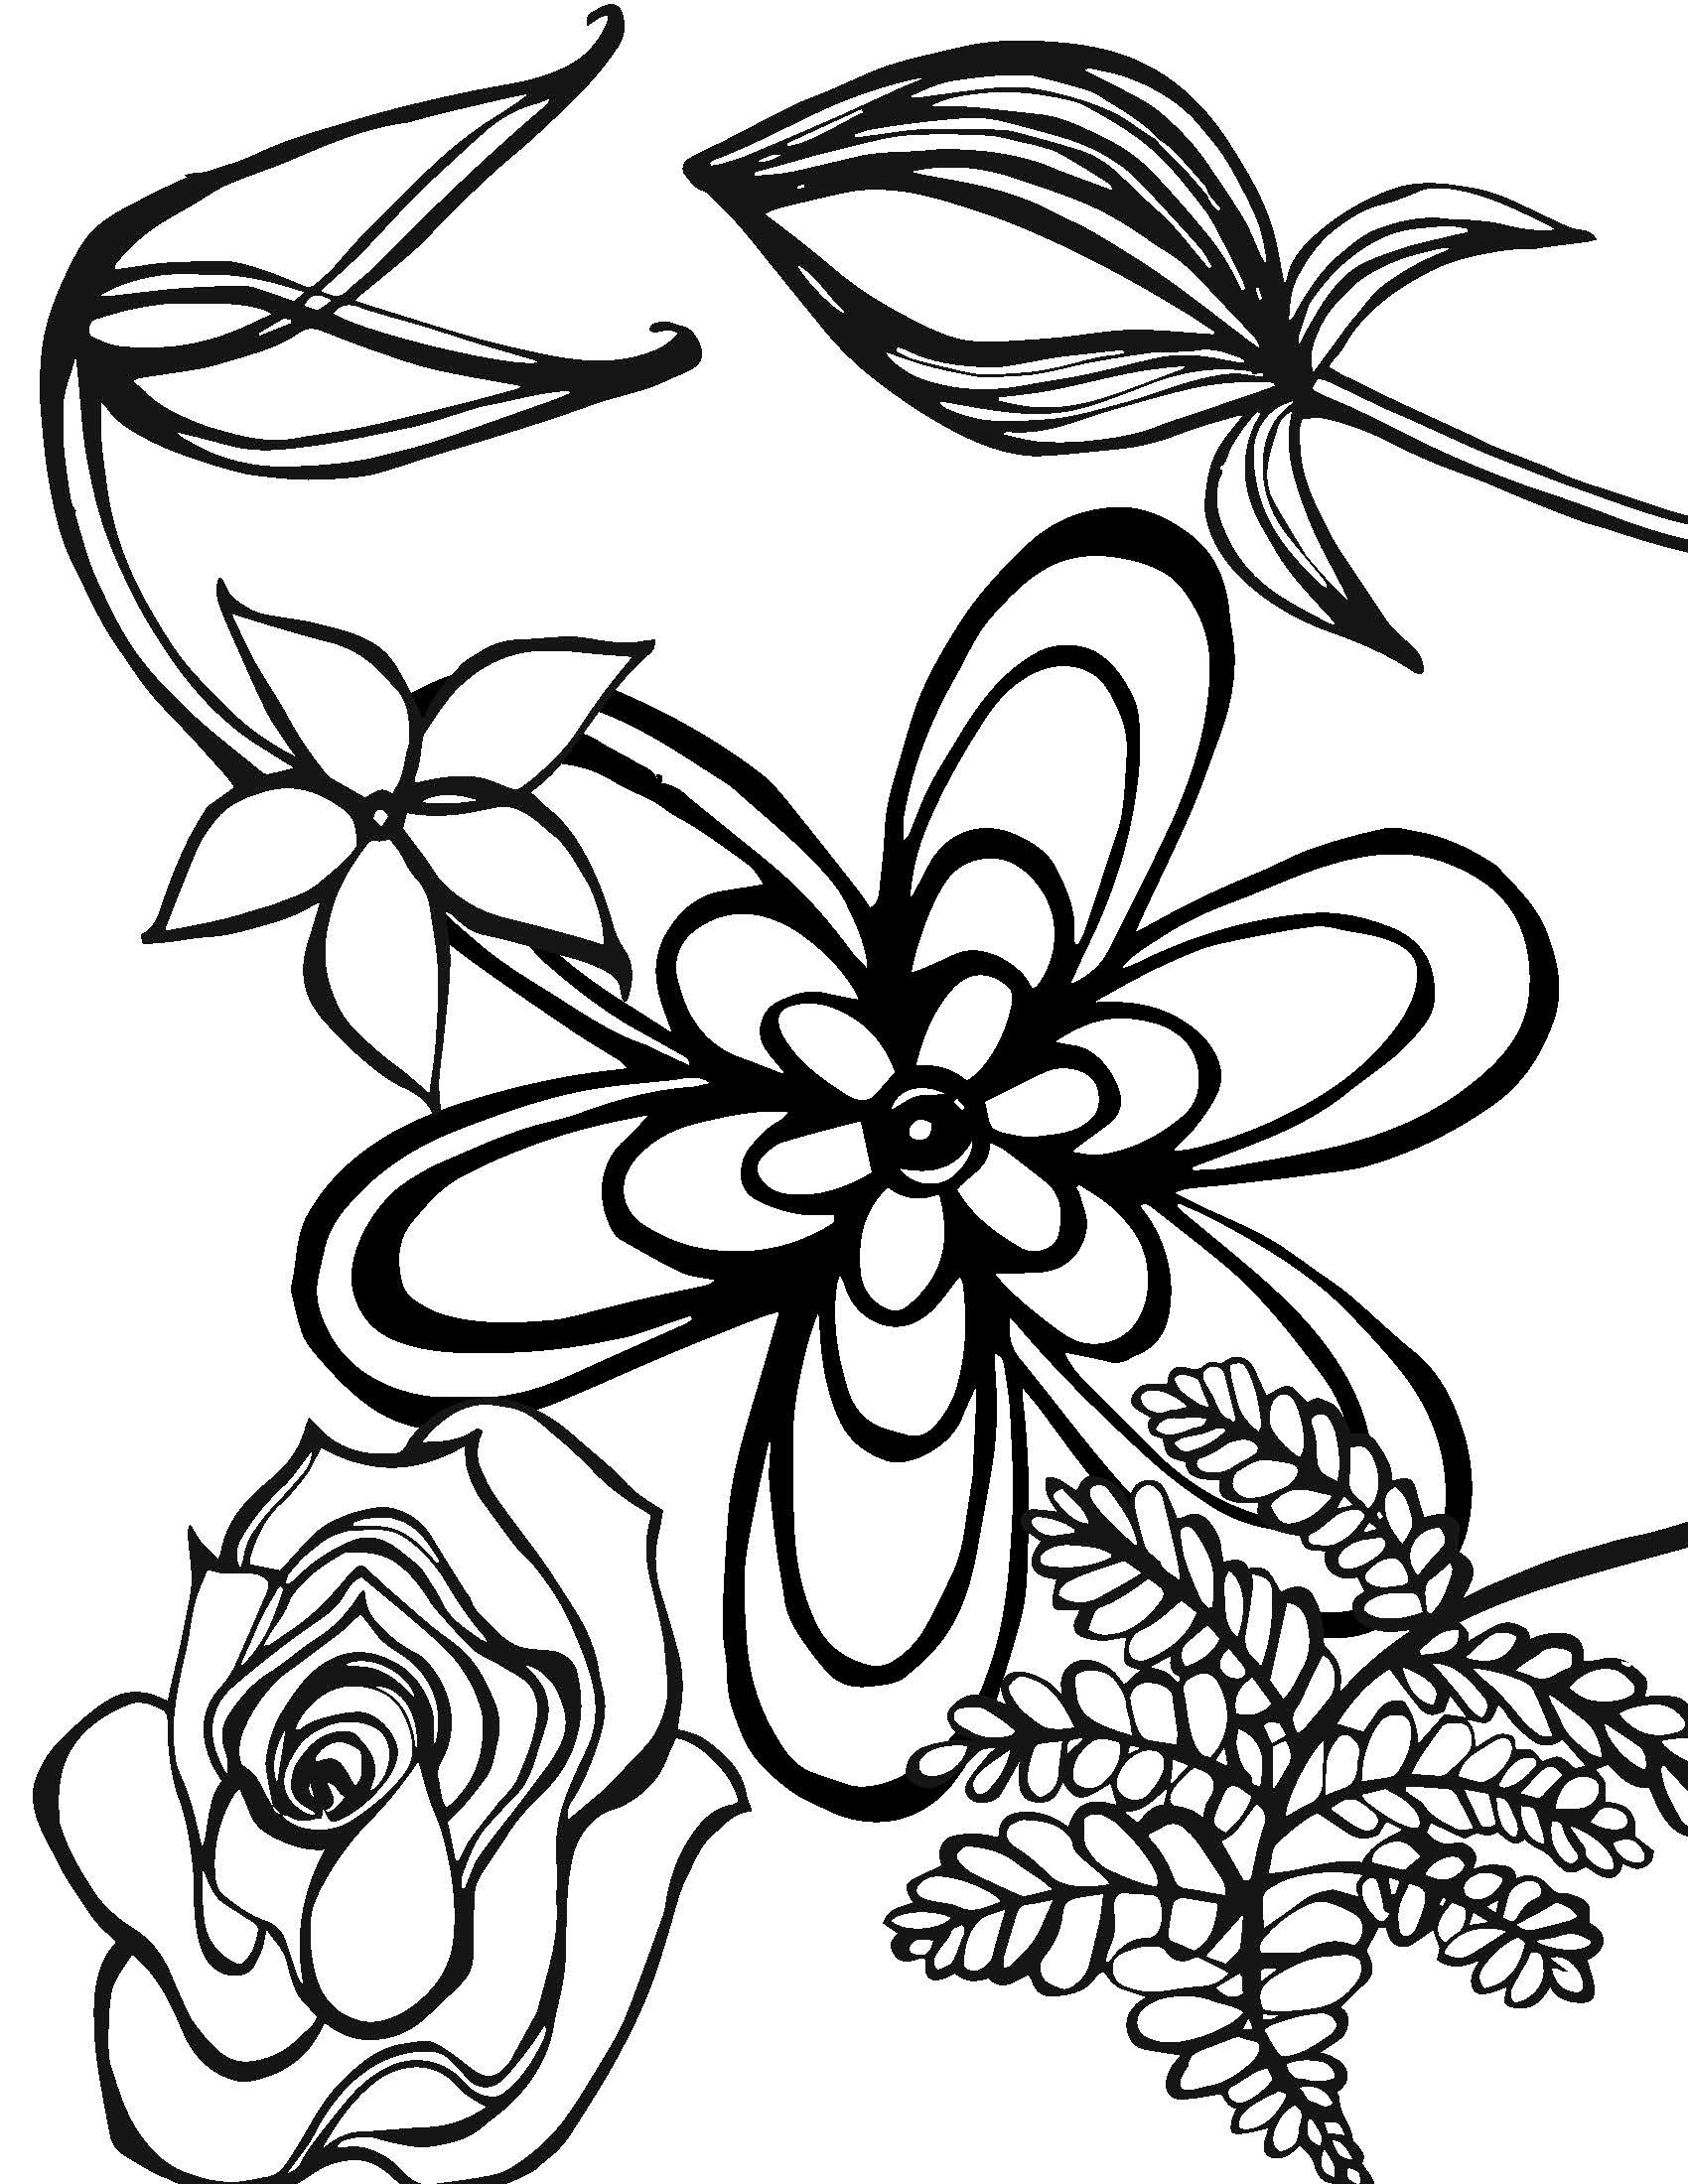 Mary Ball - Floral Coloring Book